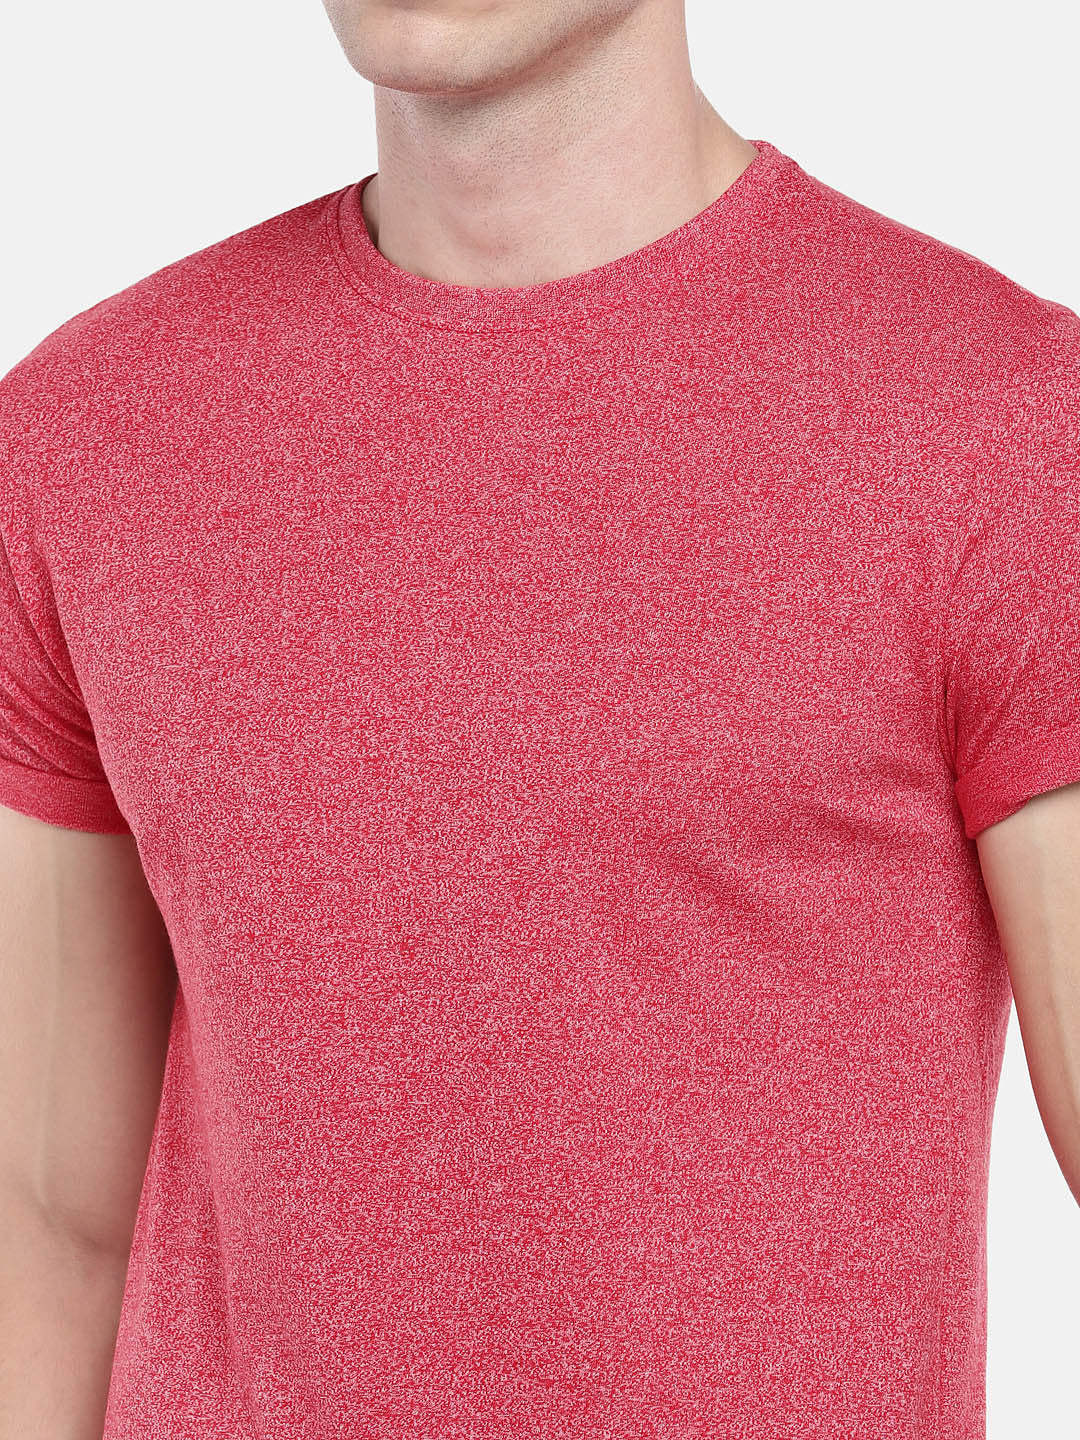 Red Solid Round Neck T-shirt-5